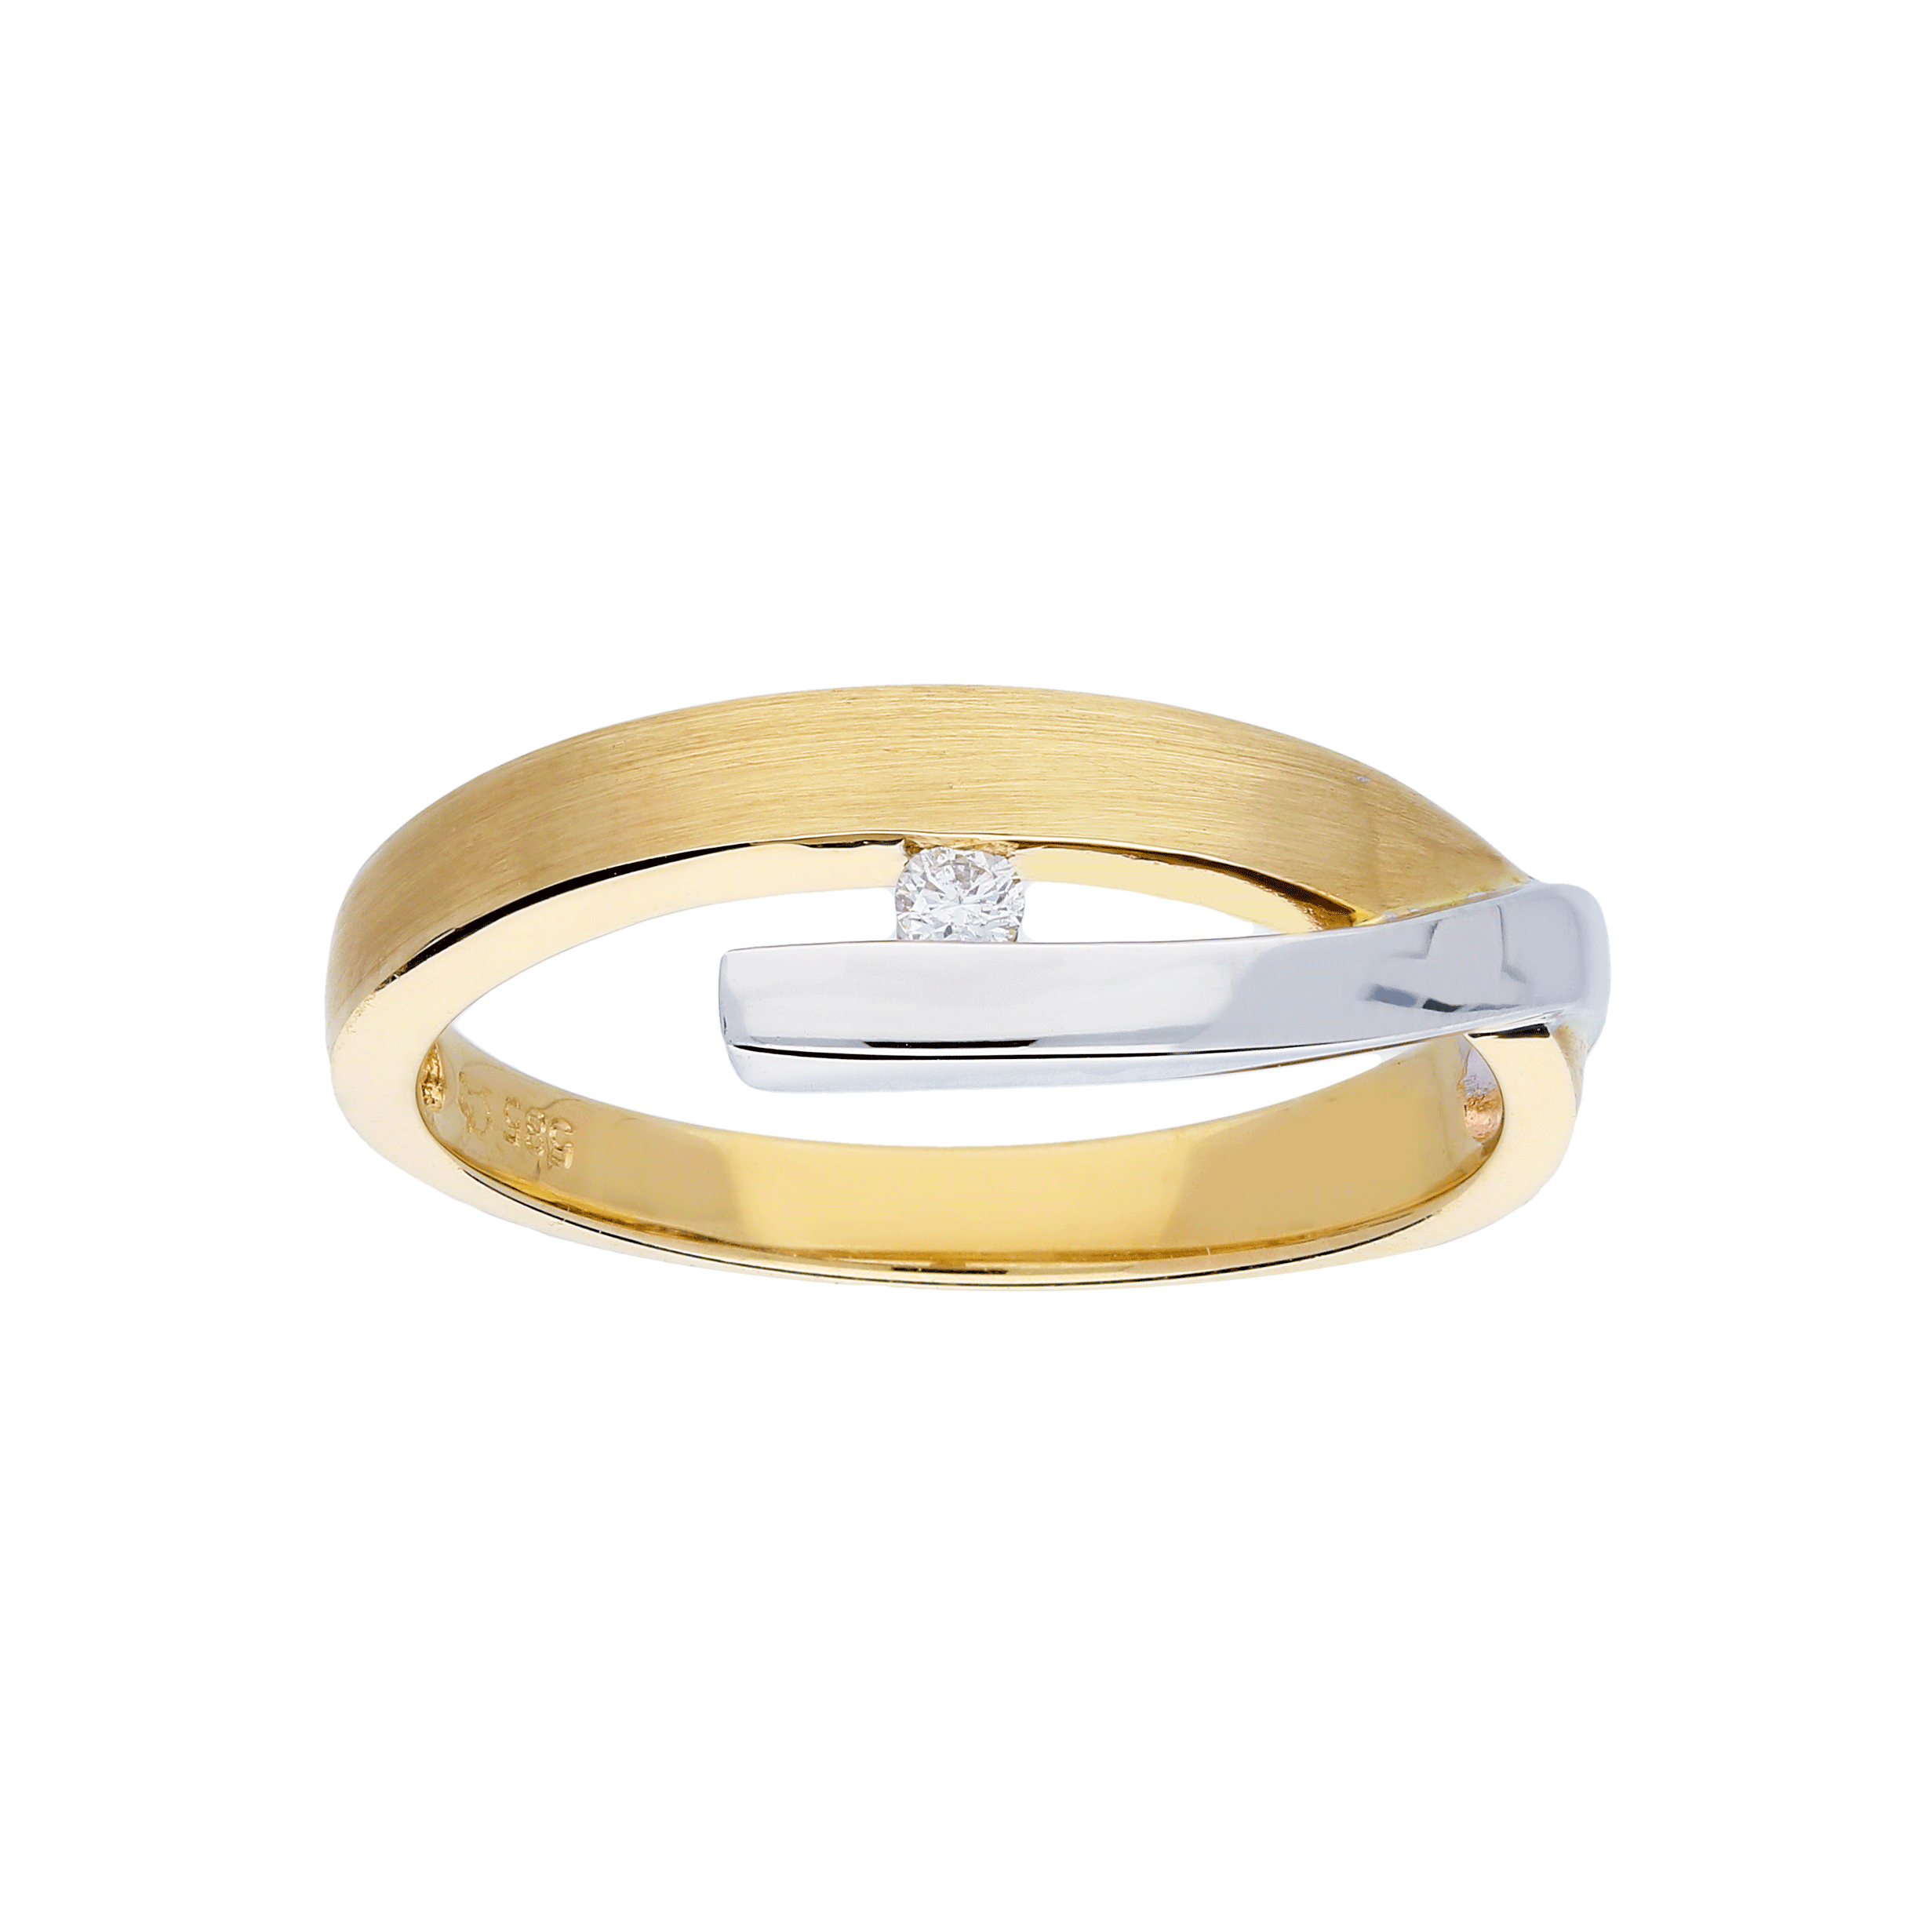 Glow Gouden Ring Bicolor Mat Glanzend Diamant 1 0.03ct G si 214.5212.52